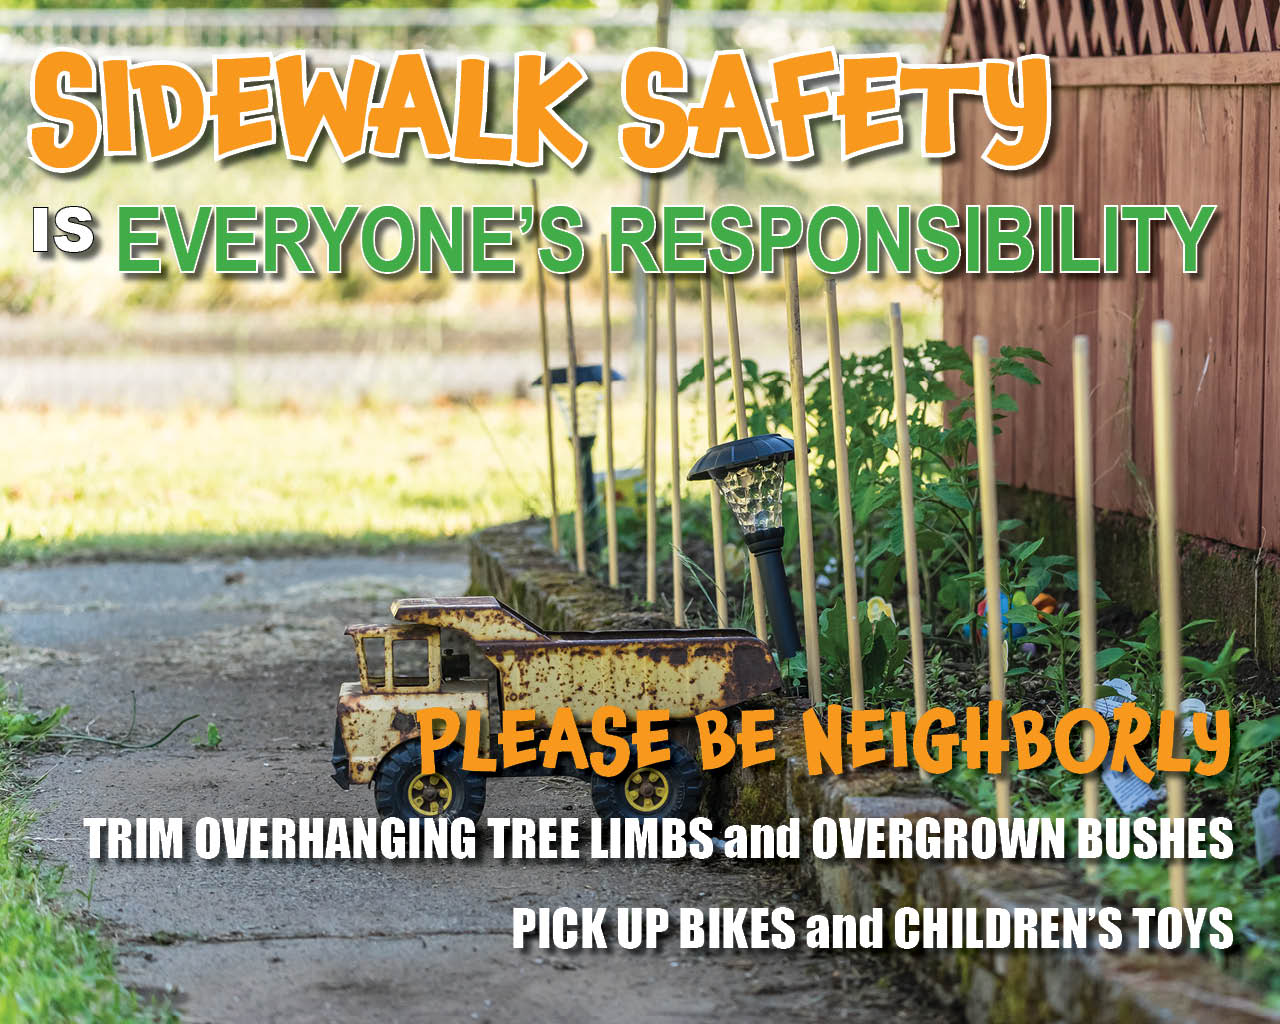 City of Indy Sidewalk Safety